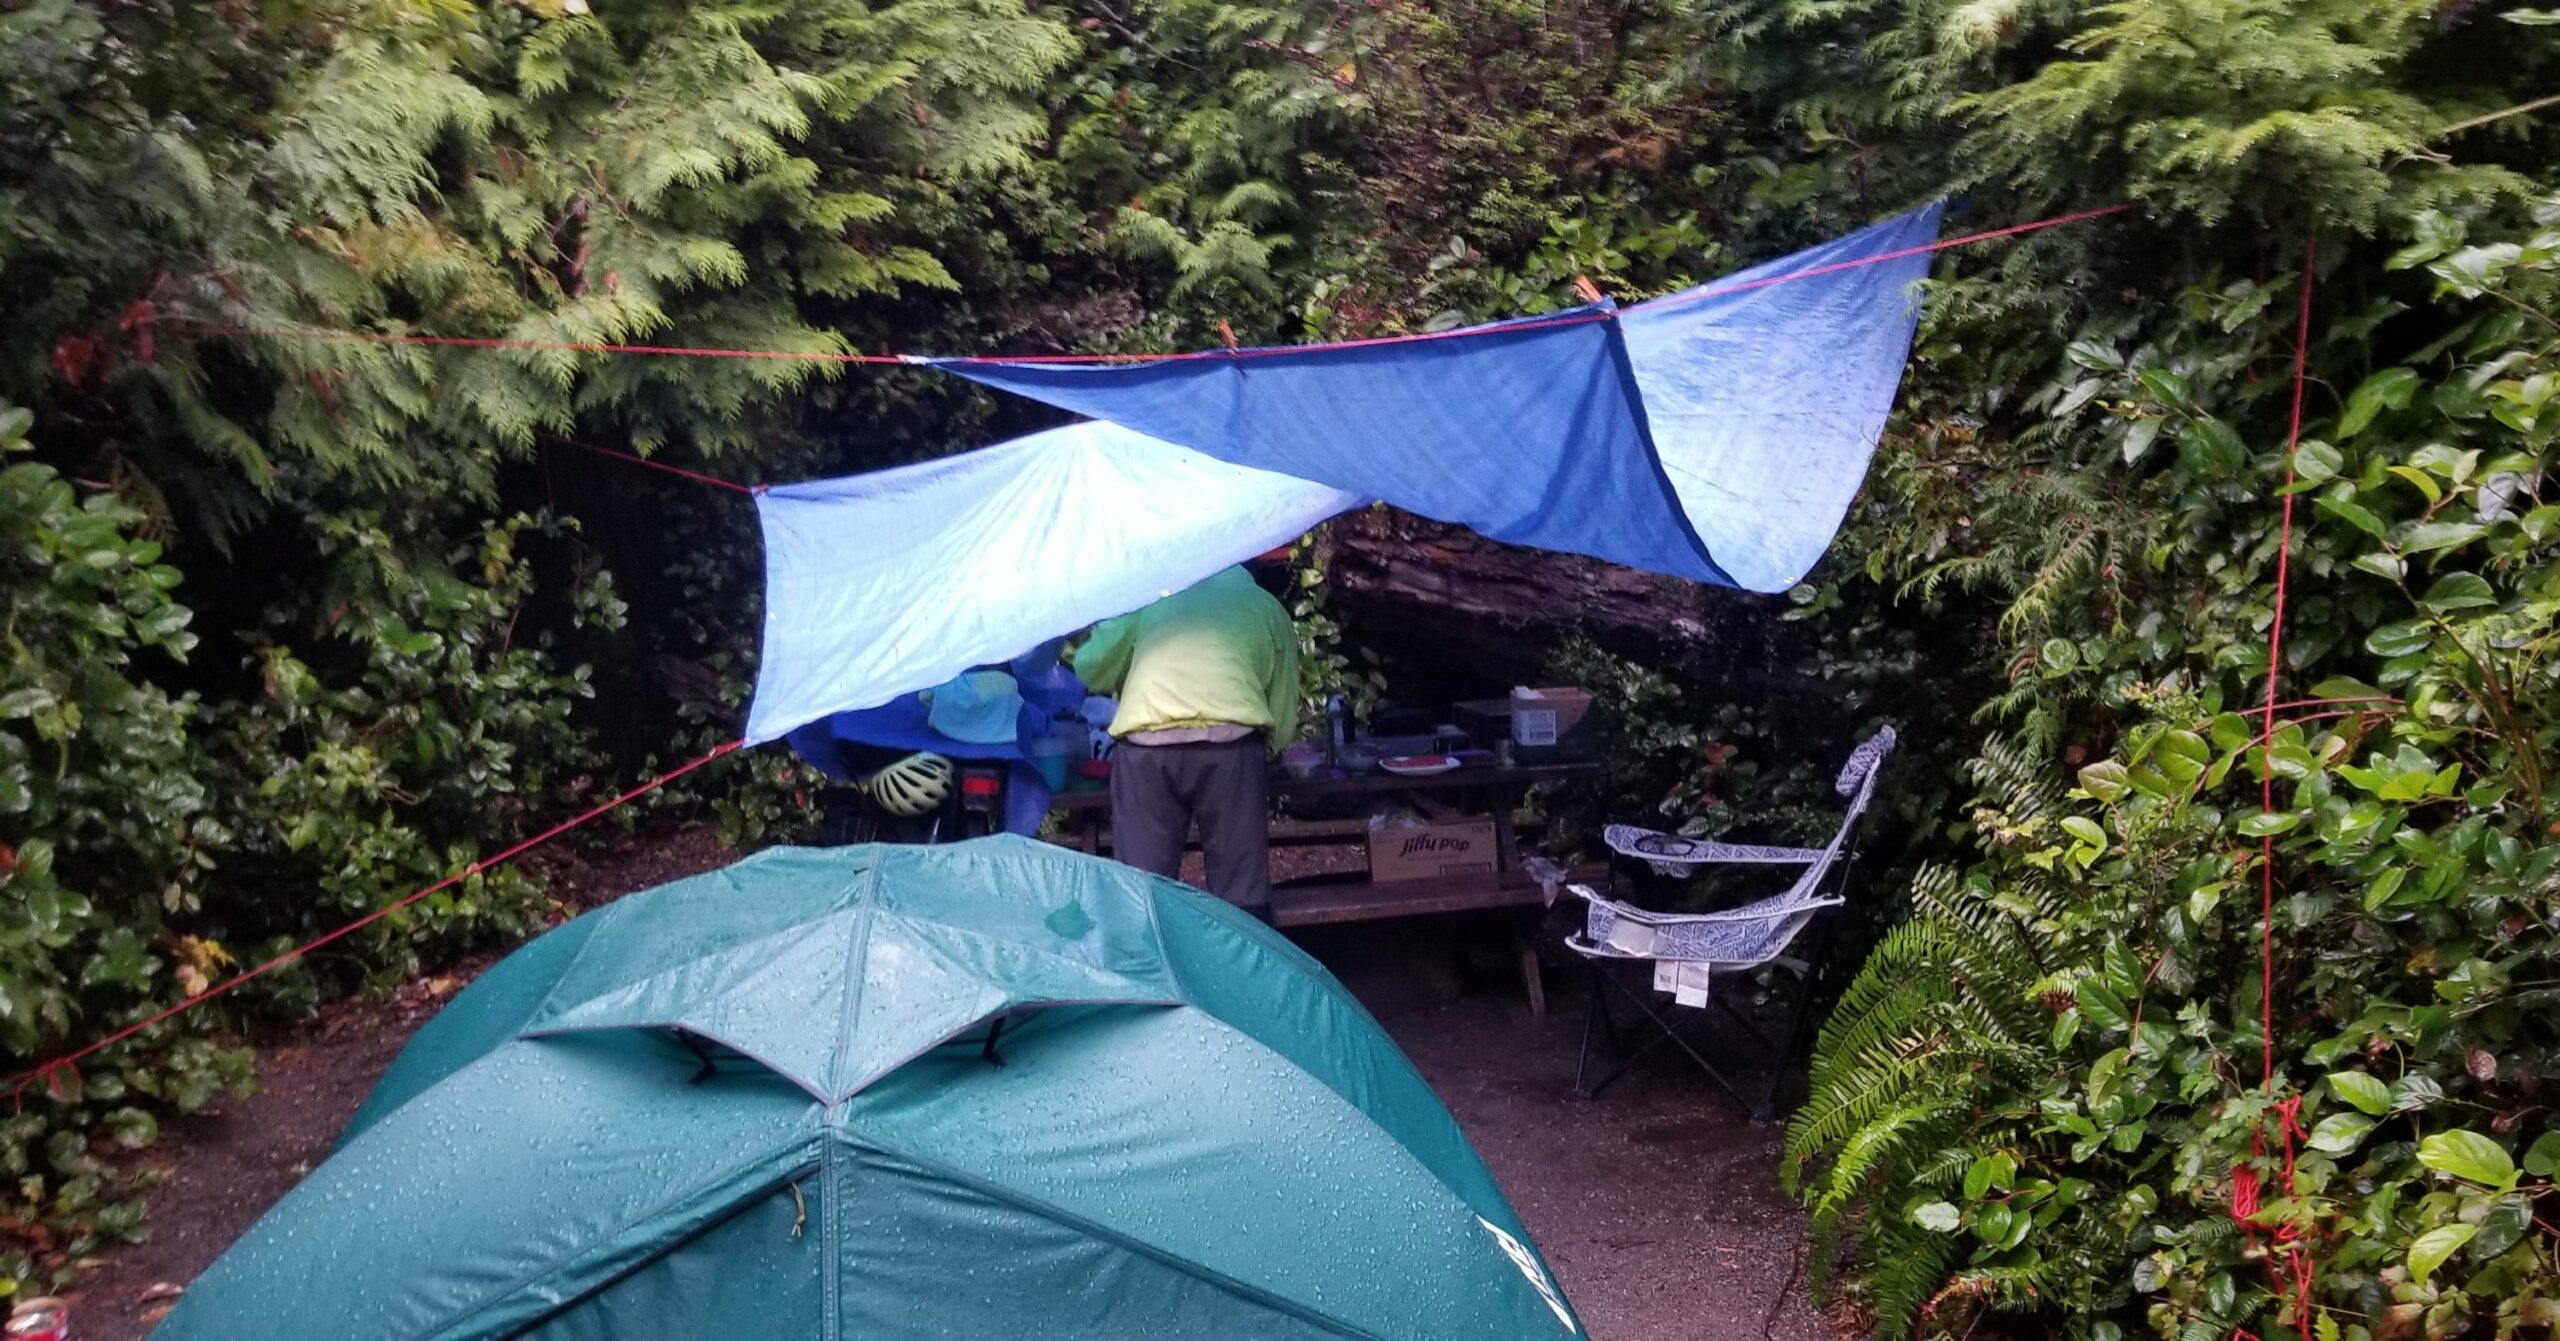 9 Useful Tips for Camping